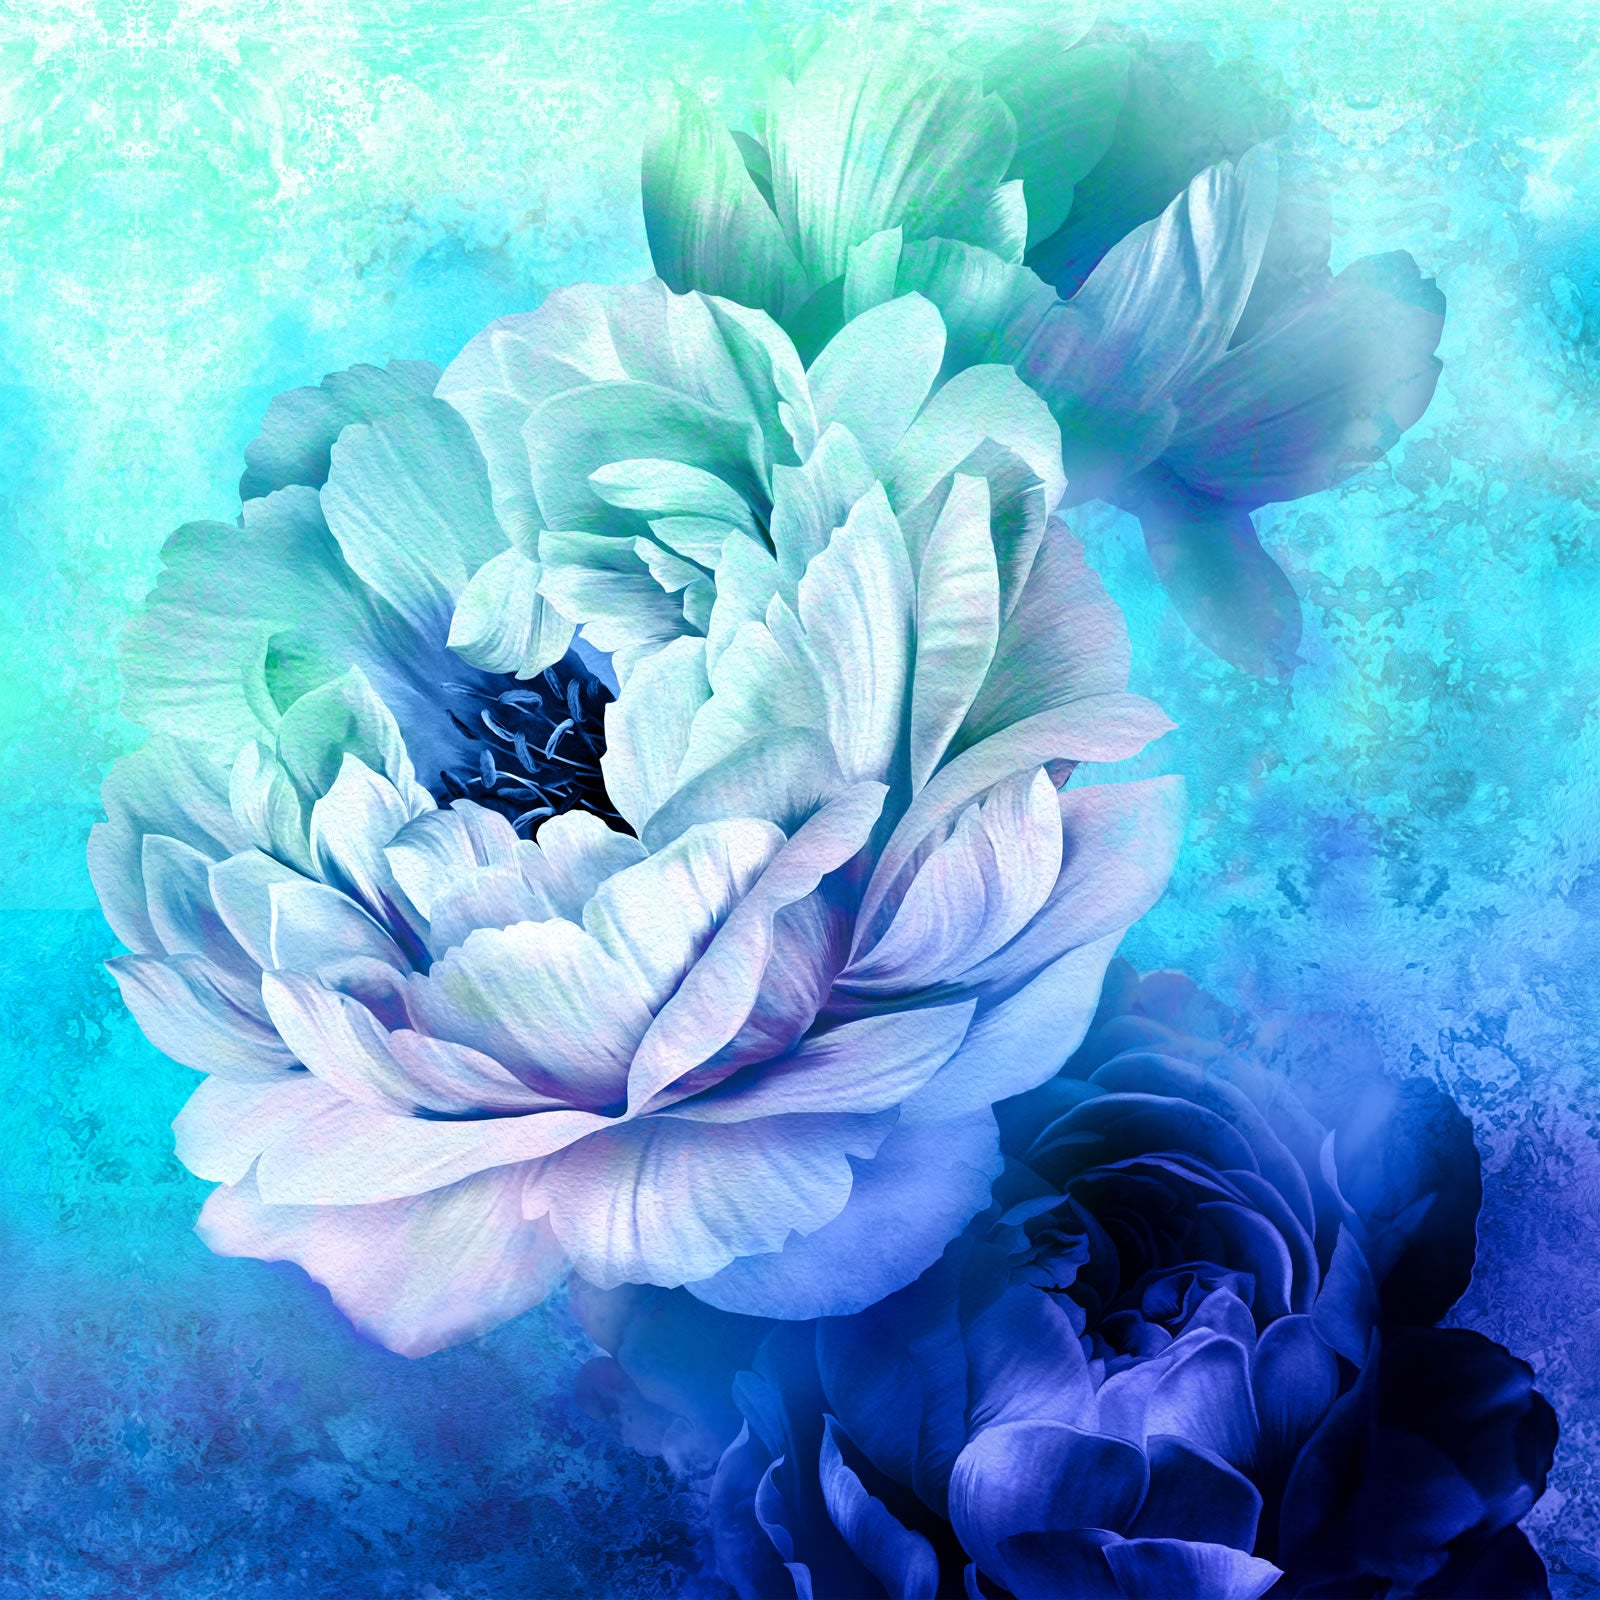 Royal Beauty Digital Panel - Blue